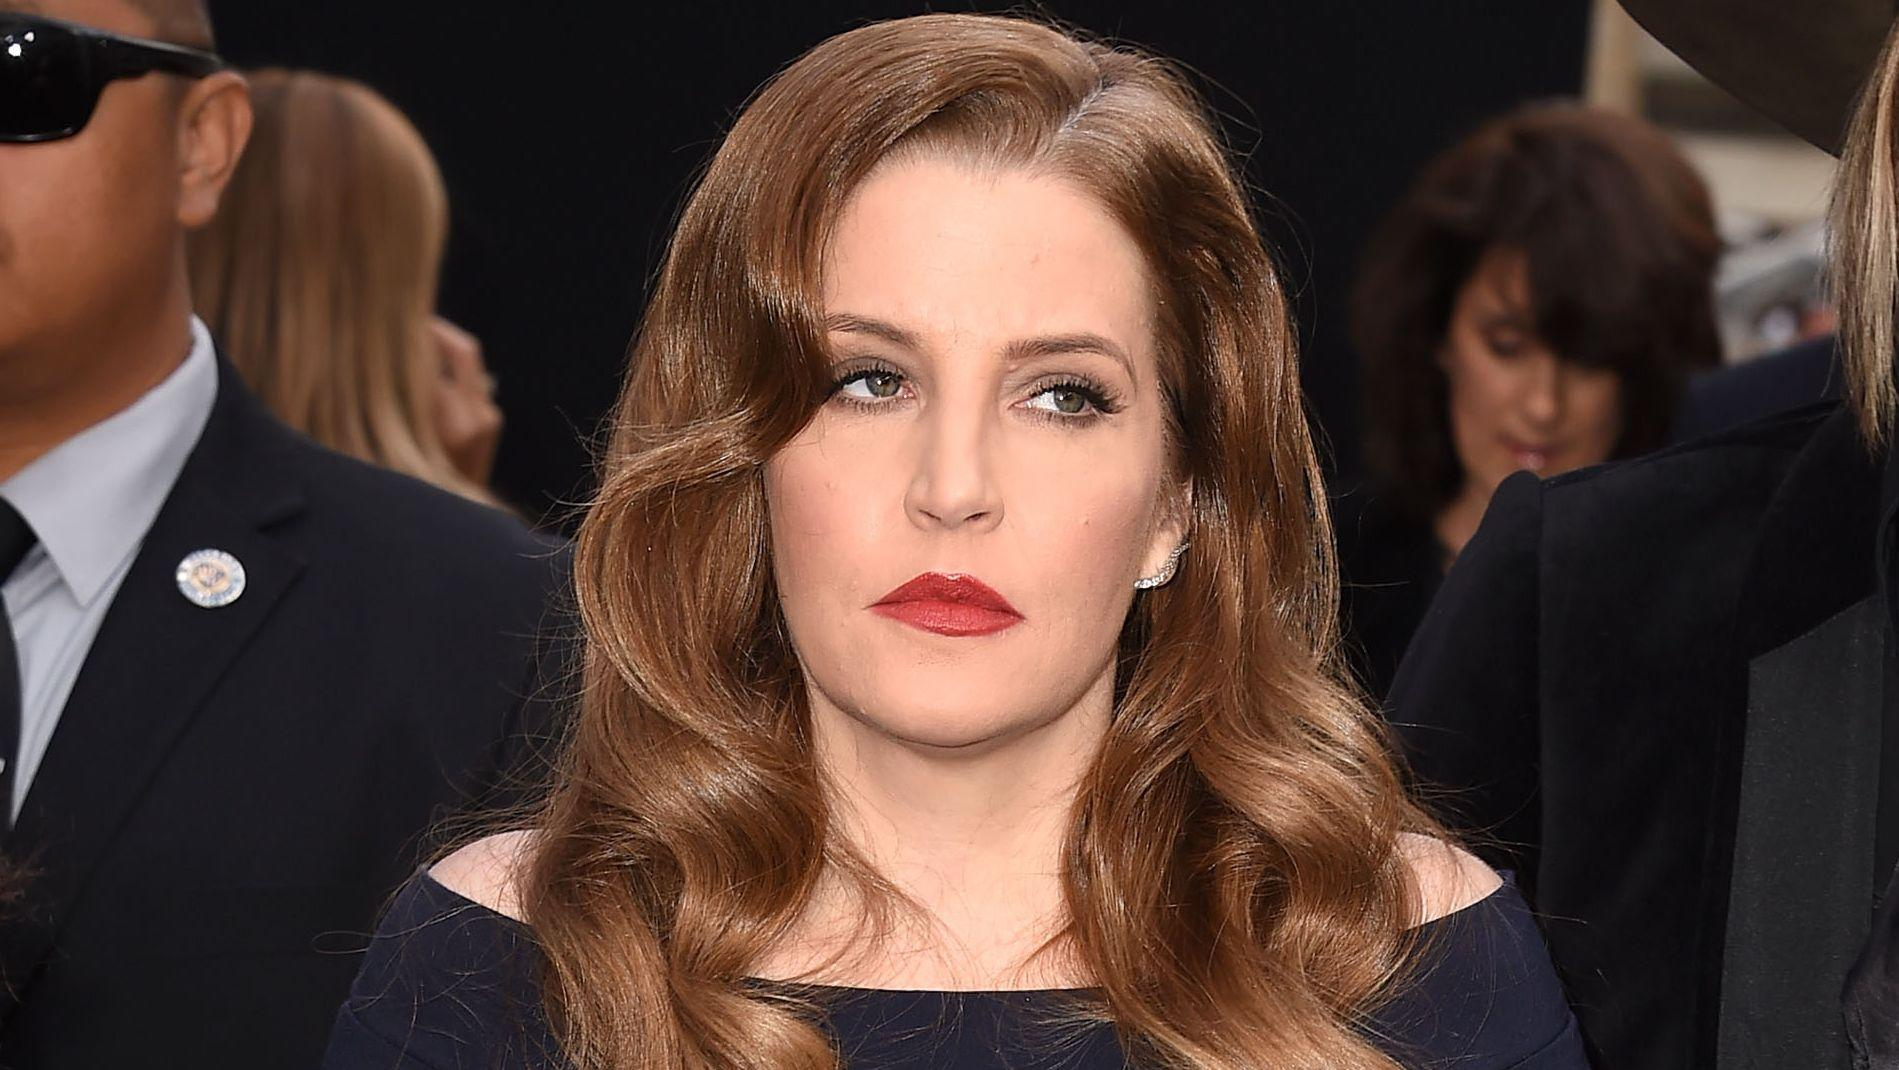 Lisa Marie Presley Moves To Block Subpoenas Over Elvis Presley